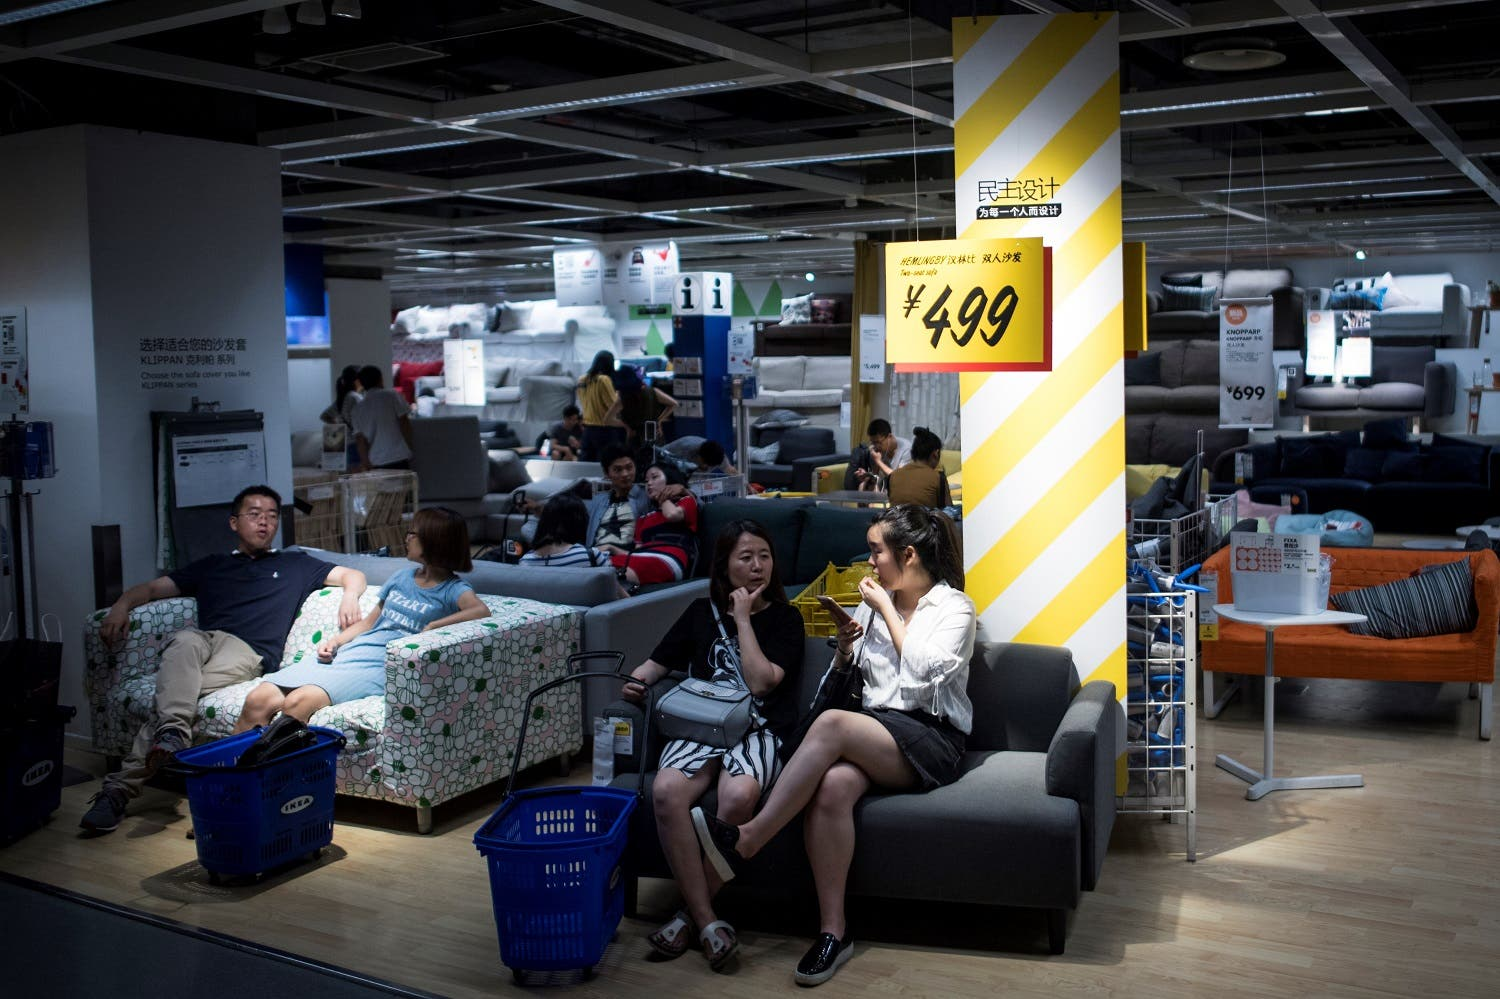 People escaping the summer heat by relaxing on a sofa in a Ikea store in downtown Shanghai. (AFP)